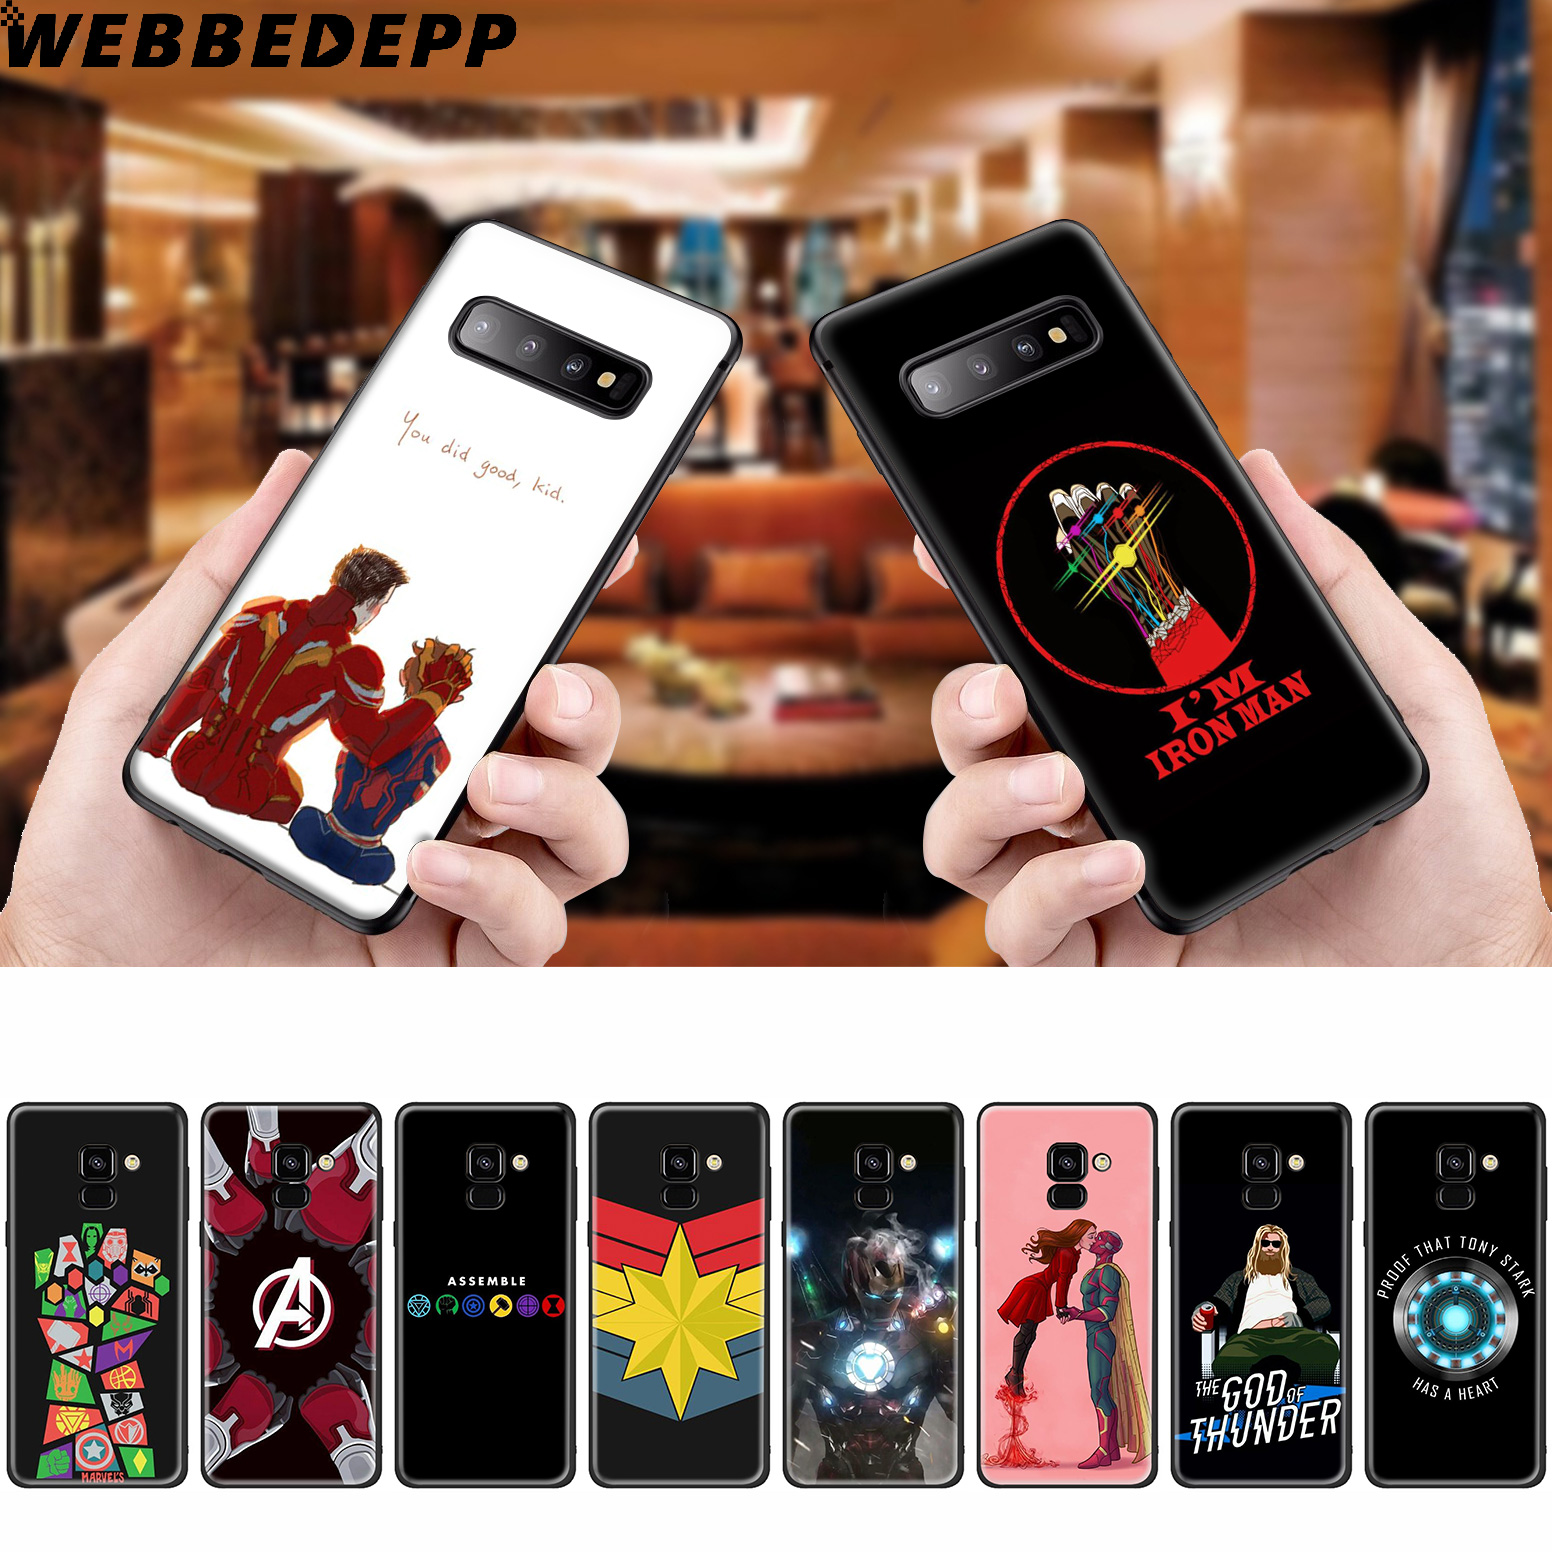 <font><b>Marvel</b></font> Comics <font><b>logo</b></font> Soft <font><b>Case</b></font> for <font><b>Samsung</b></font> <font><b>Galaxy</b></font> A50s A40s <font><b>A30s</b></font> A20s A10s Phone <font><b>Case</b></font> Cover Soft TPU image